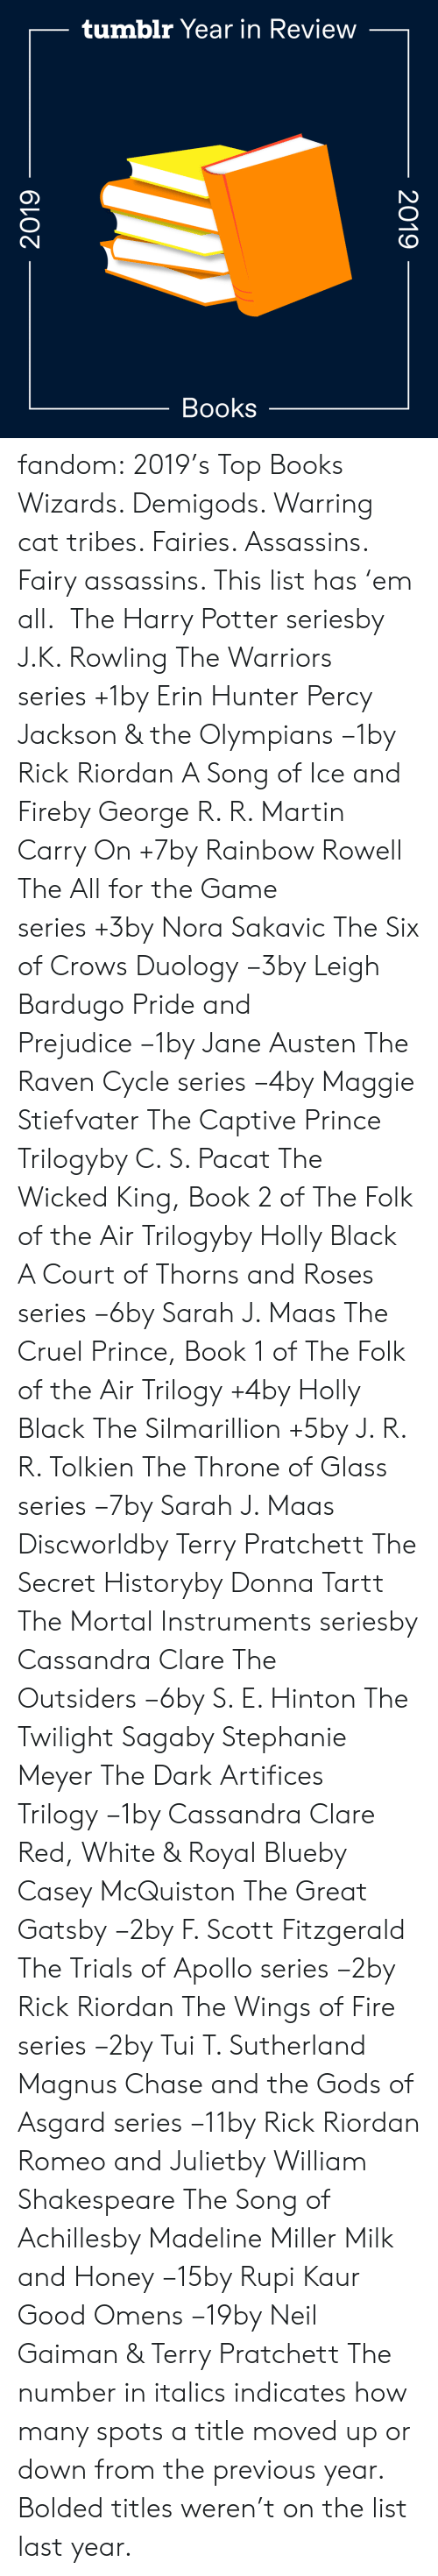 potter: tumblr Year in Review  Books  2019  2019 fandom:  2019's Top Books  Wizards. Demigods. Warring cat tribes. Fairies. Assassins. Fairy assassins. This list has 'em all.   The Harry Potter seriesby J.K. Rowling  The Warriors series +1by Erin Hunter  Percy Jackson & the Olympians −1by Rick Riordan  A Song of Ice and Fireby George R. R. Martin  Carry On +7by Rainbow Rowell  The All for the Game series +3by Nora Sakavic  The Six of Crows Duology −3by Leigh Bardugo  Pride and Prejudice −1by Jane Austen  The Raven Cycle series −4by Maggie Stiefvater  The Captive Prince Trilogyby C. S. Pacat  The Wicked King, Book 2 of The Folk of the Air Trilogyby Holly Black  A Court of Thorns and Roses series −6by Sarah J. Maas  The Cruel Prince, Book 1 of The Folk of the Air Trilogy +4by Holly Black  The Silmarillion +5by J. R. R. Tolkien  The Throne of Glass series −7by Sarah J. Maas  Discworldby Terry Pratchett  The Secret Historyby Donna Tartt  The Mortal Instruments seriesby Cassandra Clare  The Outsiders −6by S. E. Hinton  The Twilight Sagaby Stephanie Meyer  The Dark Artifices Trilogy −1by Cassandra Clare  Red, White & Royal Blueby Casey McQuiston  The Great Gatsby −2by F. Scott Fitzgerald  The Trials of Apollo series −2by Rick Riordan  The Wings of Fire series −2by Tui T. Sutherland  Magnus Chase and the Gods of Asgard series −11by Rick Riordan  Romeo and Julietby William Shakespeare  The Song of Achillesby Madeline Miller  Milk and Honey −15by Rupi Kaur  Good Omens −19by Neil Gaiman & Terry Pratchett The number in italics indicates how many spots a title moved up or down from the previous year. Bolded titles weren't on the list last year.